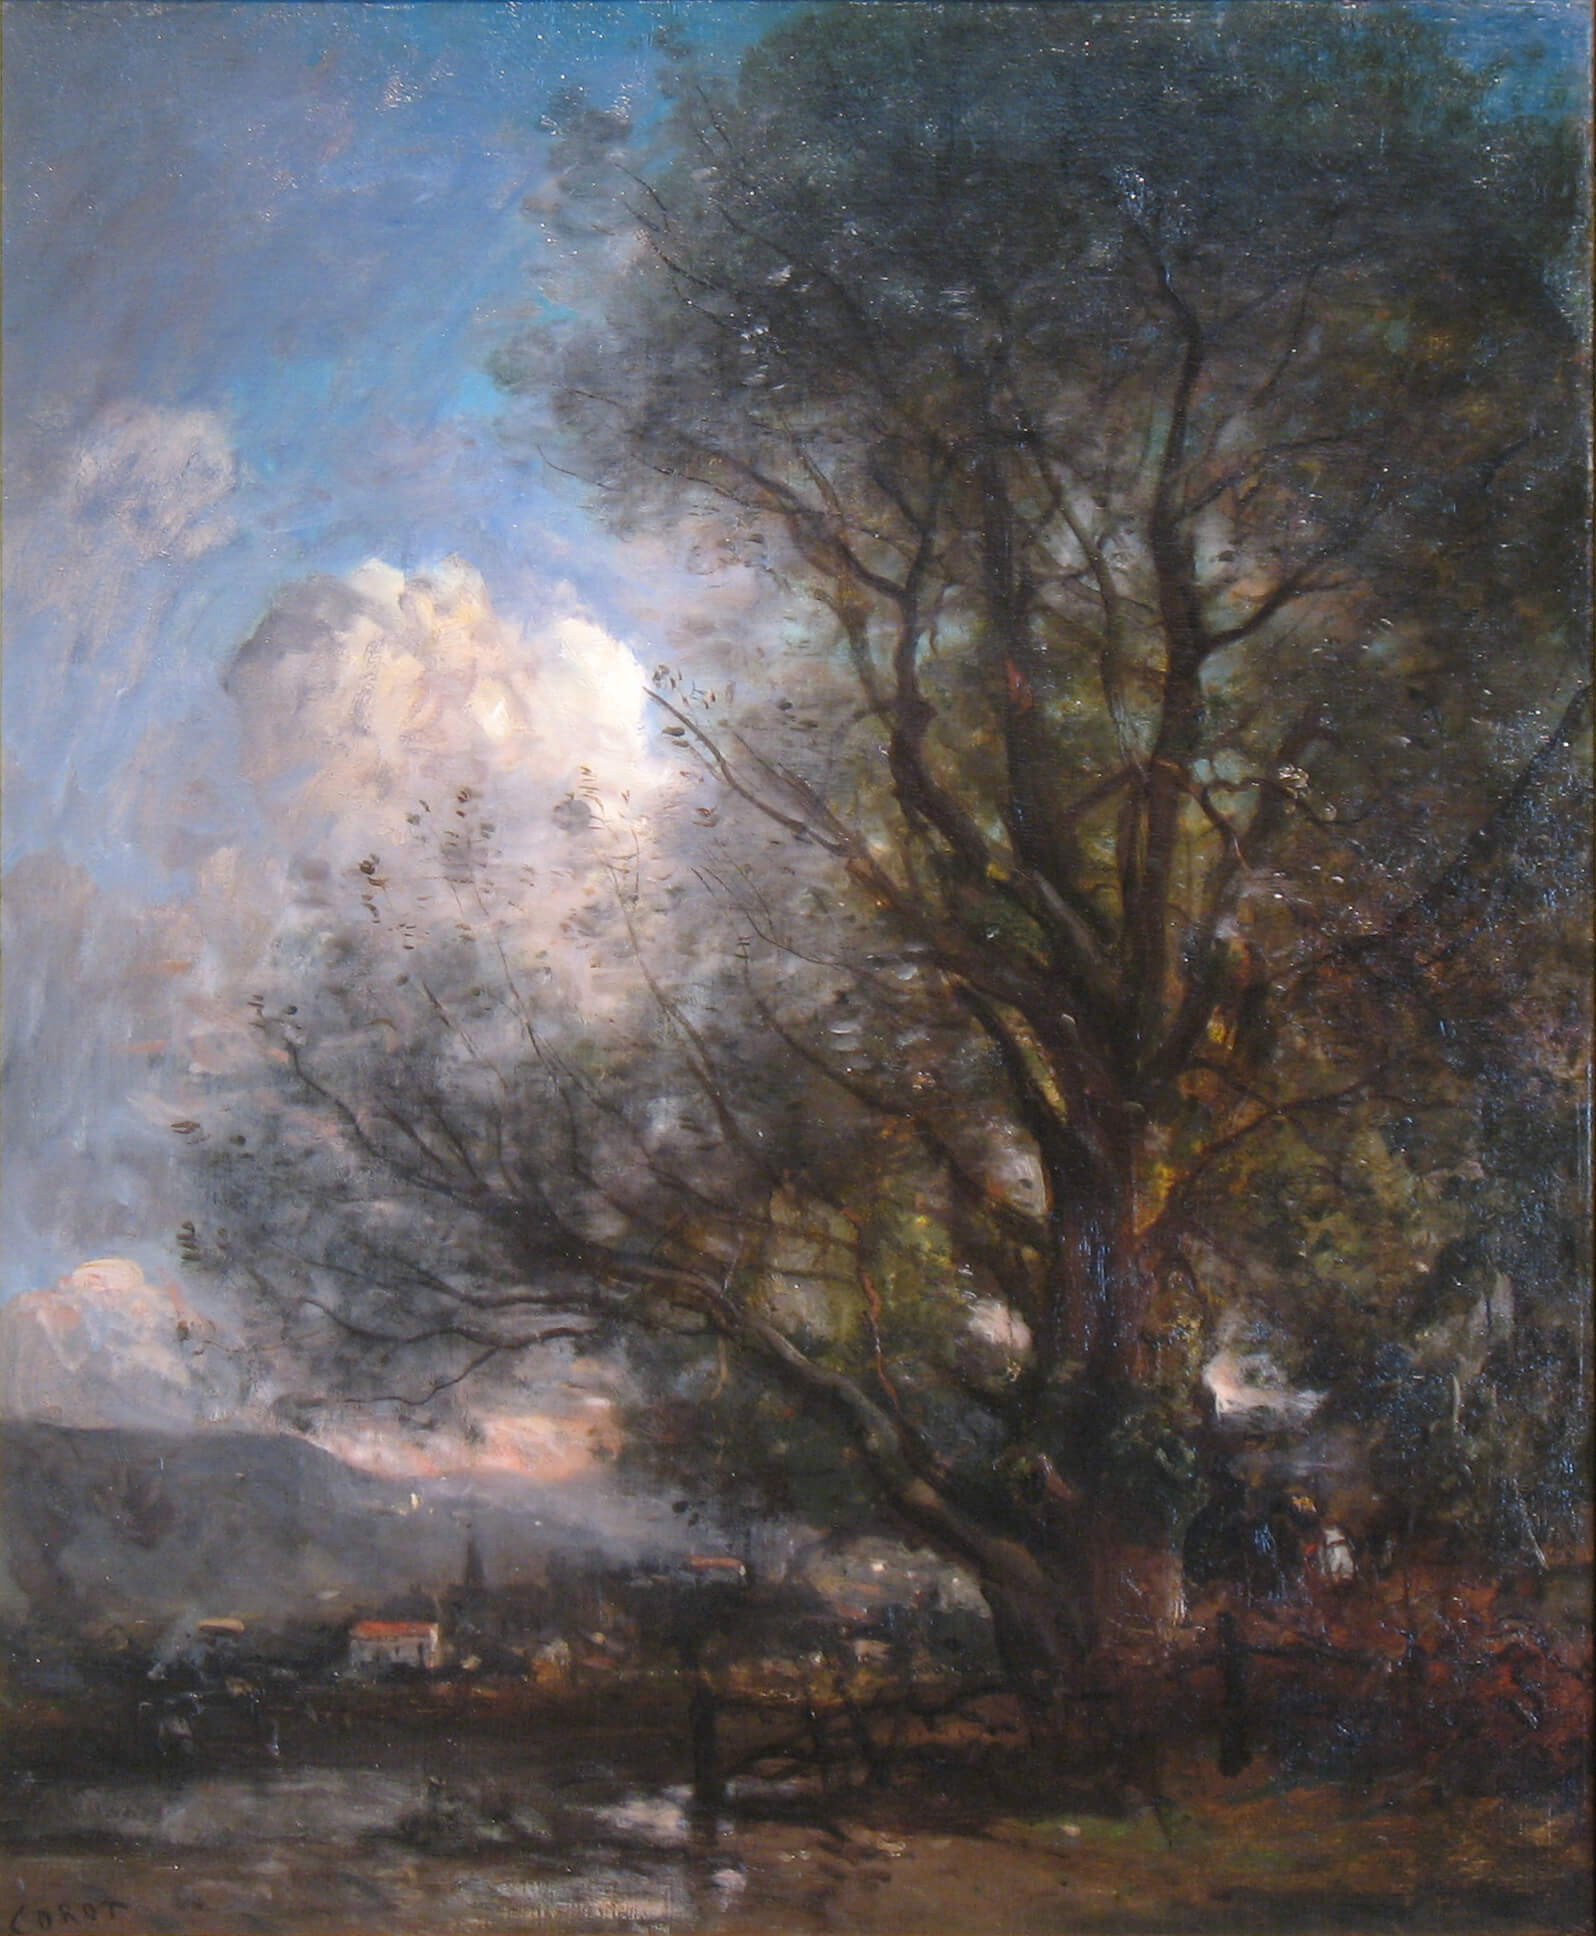 The Big Tree (1863 Oil on Canvas)